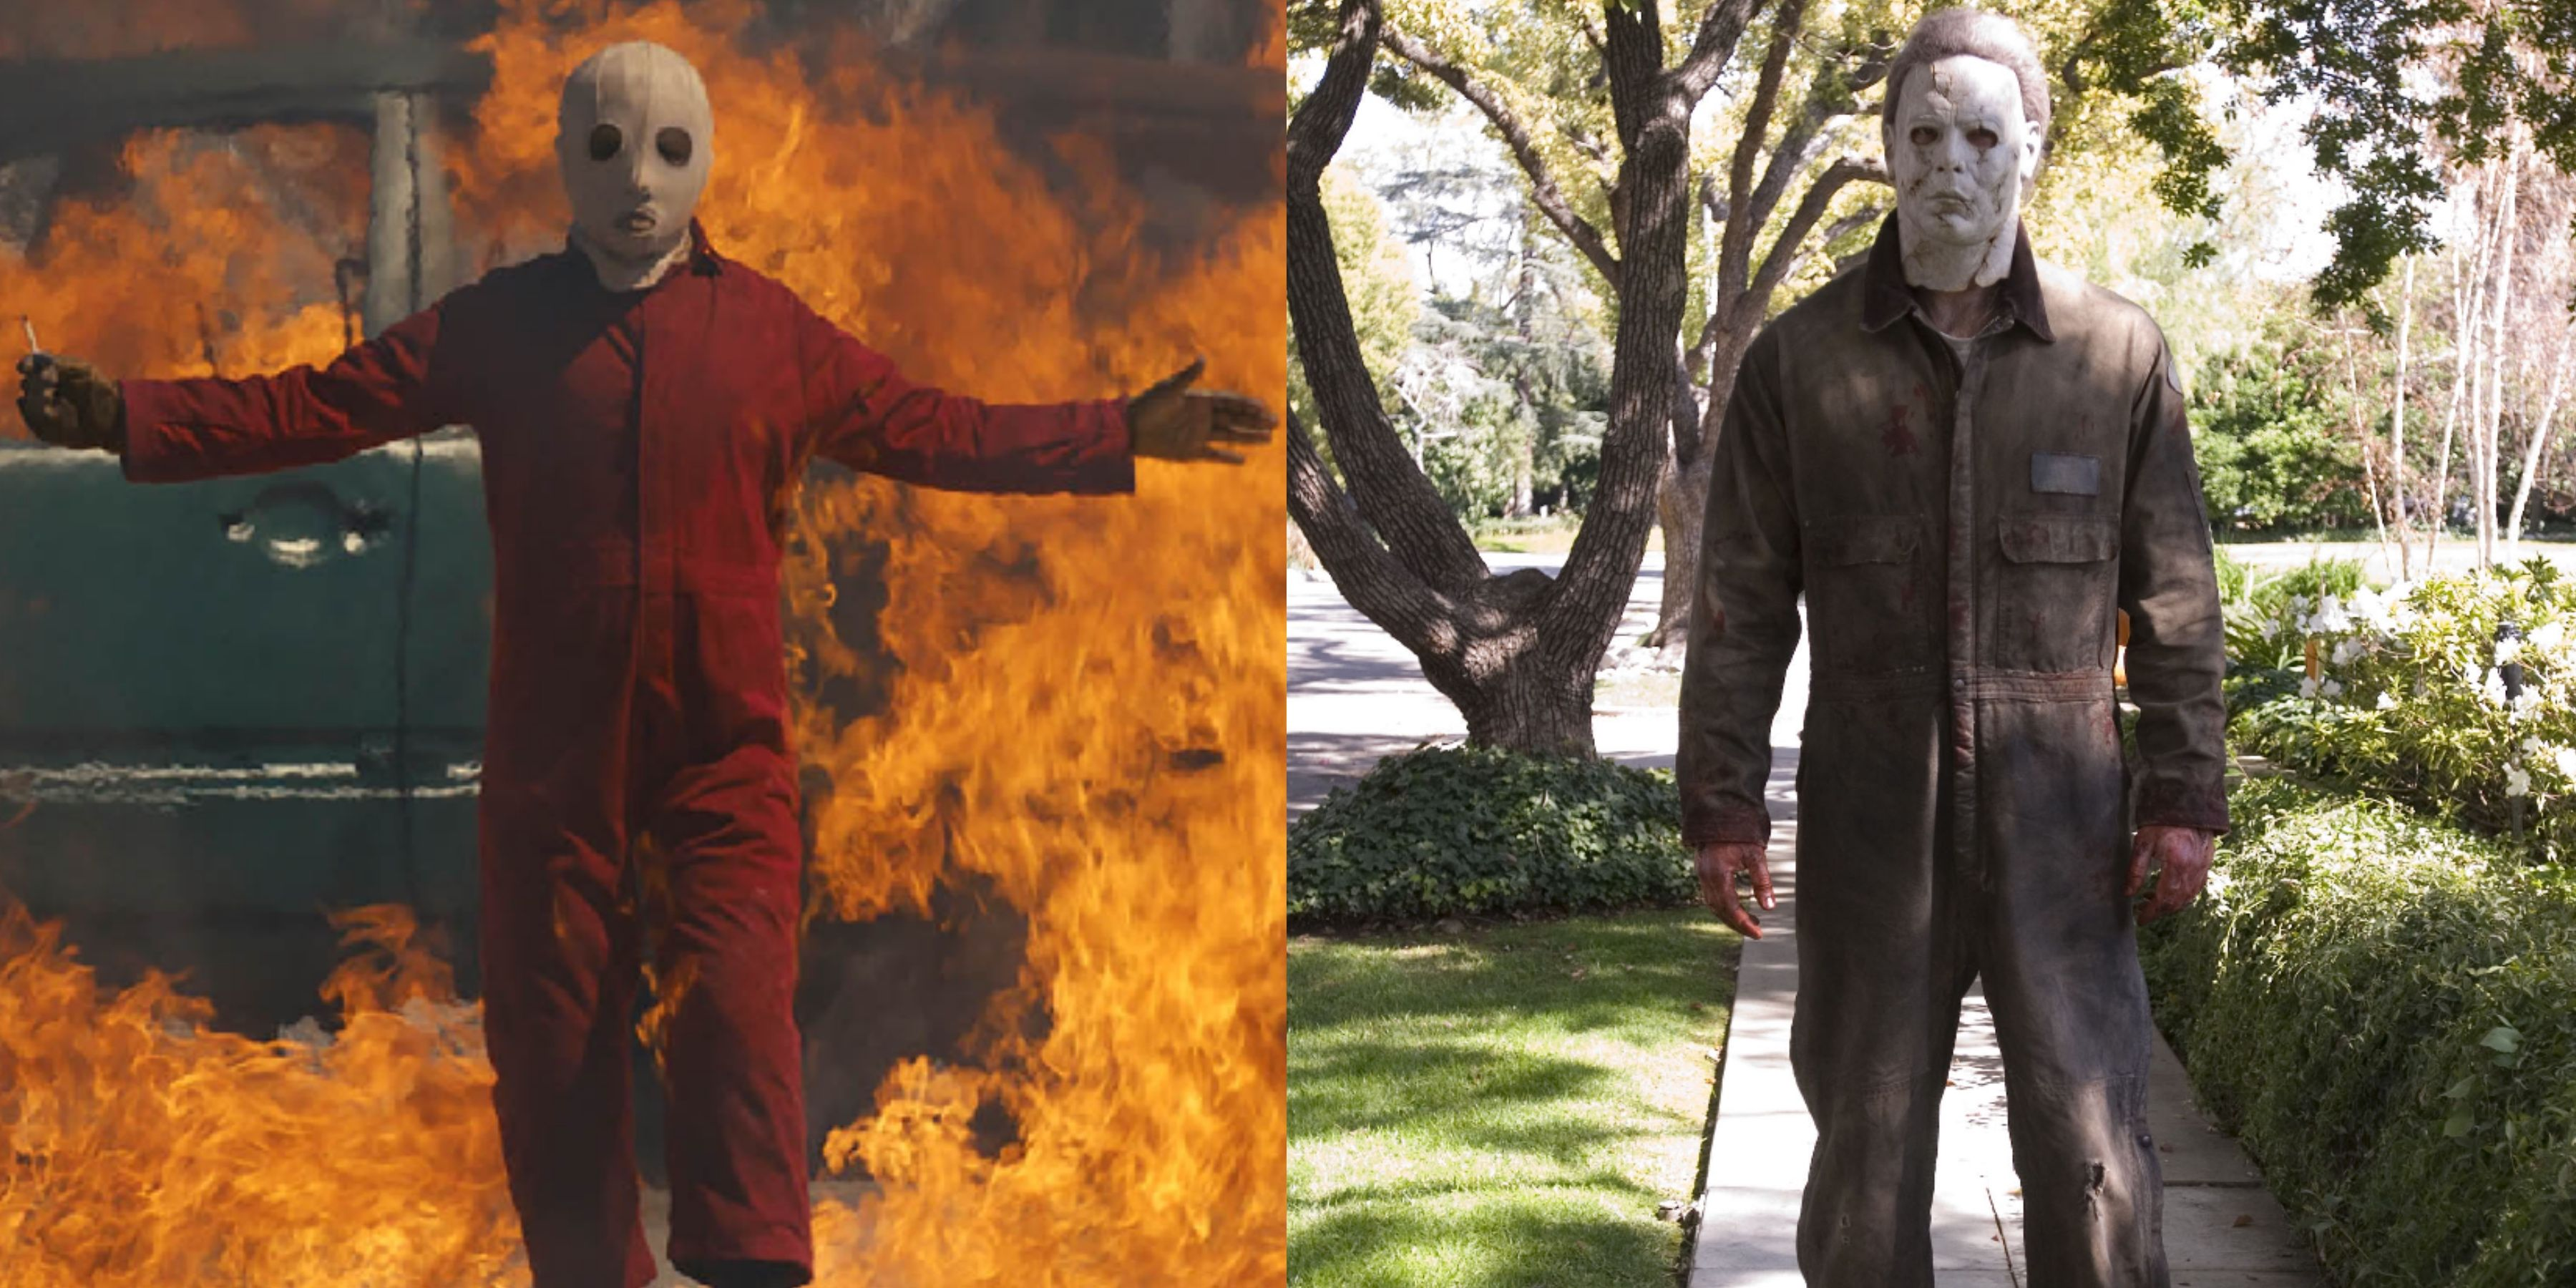 Us Movie Halloween Theory - Is Michael Myers a Tethered From